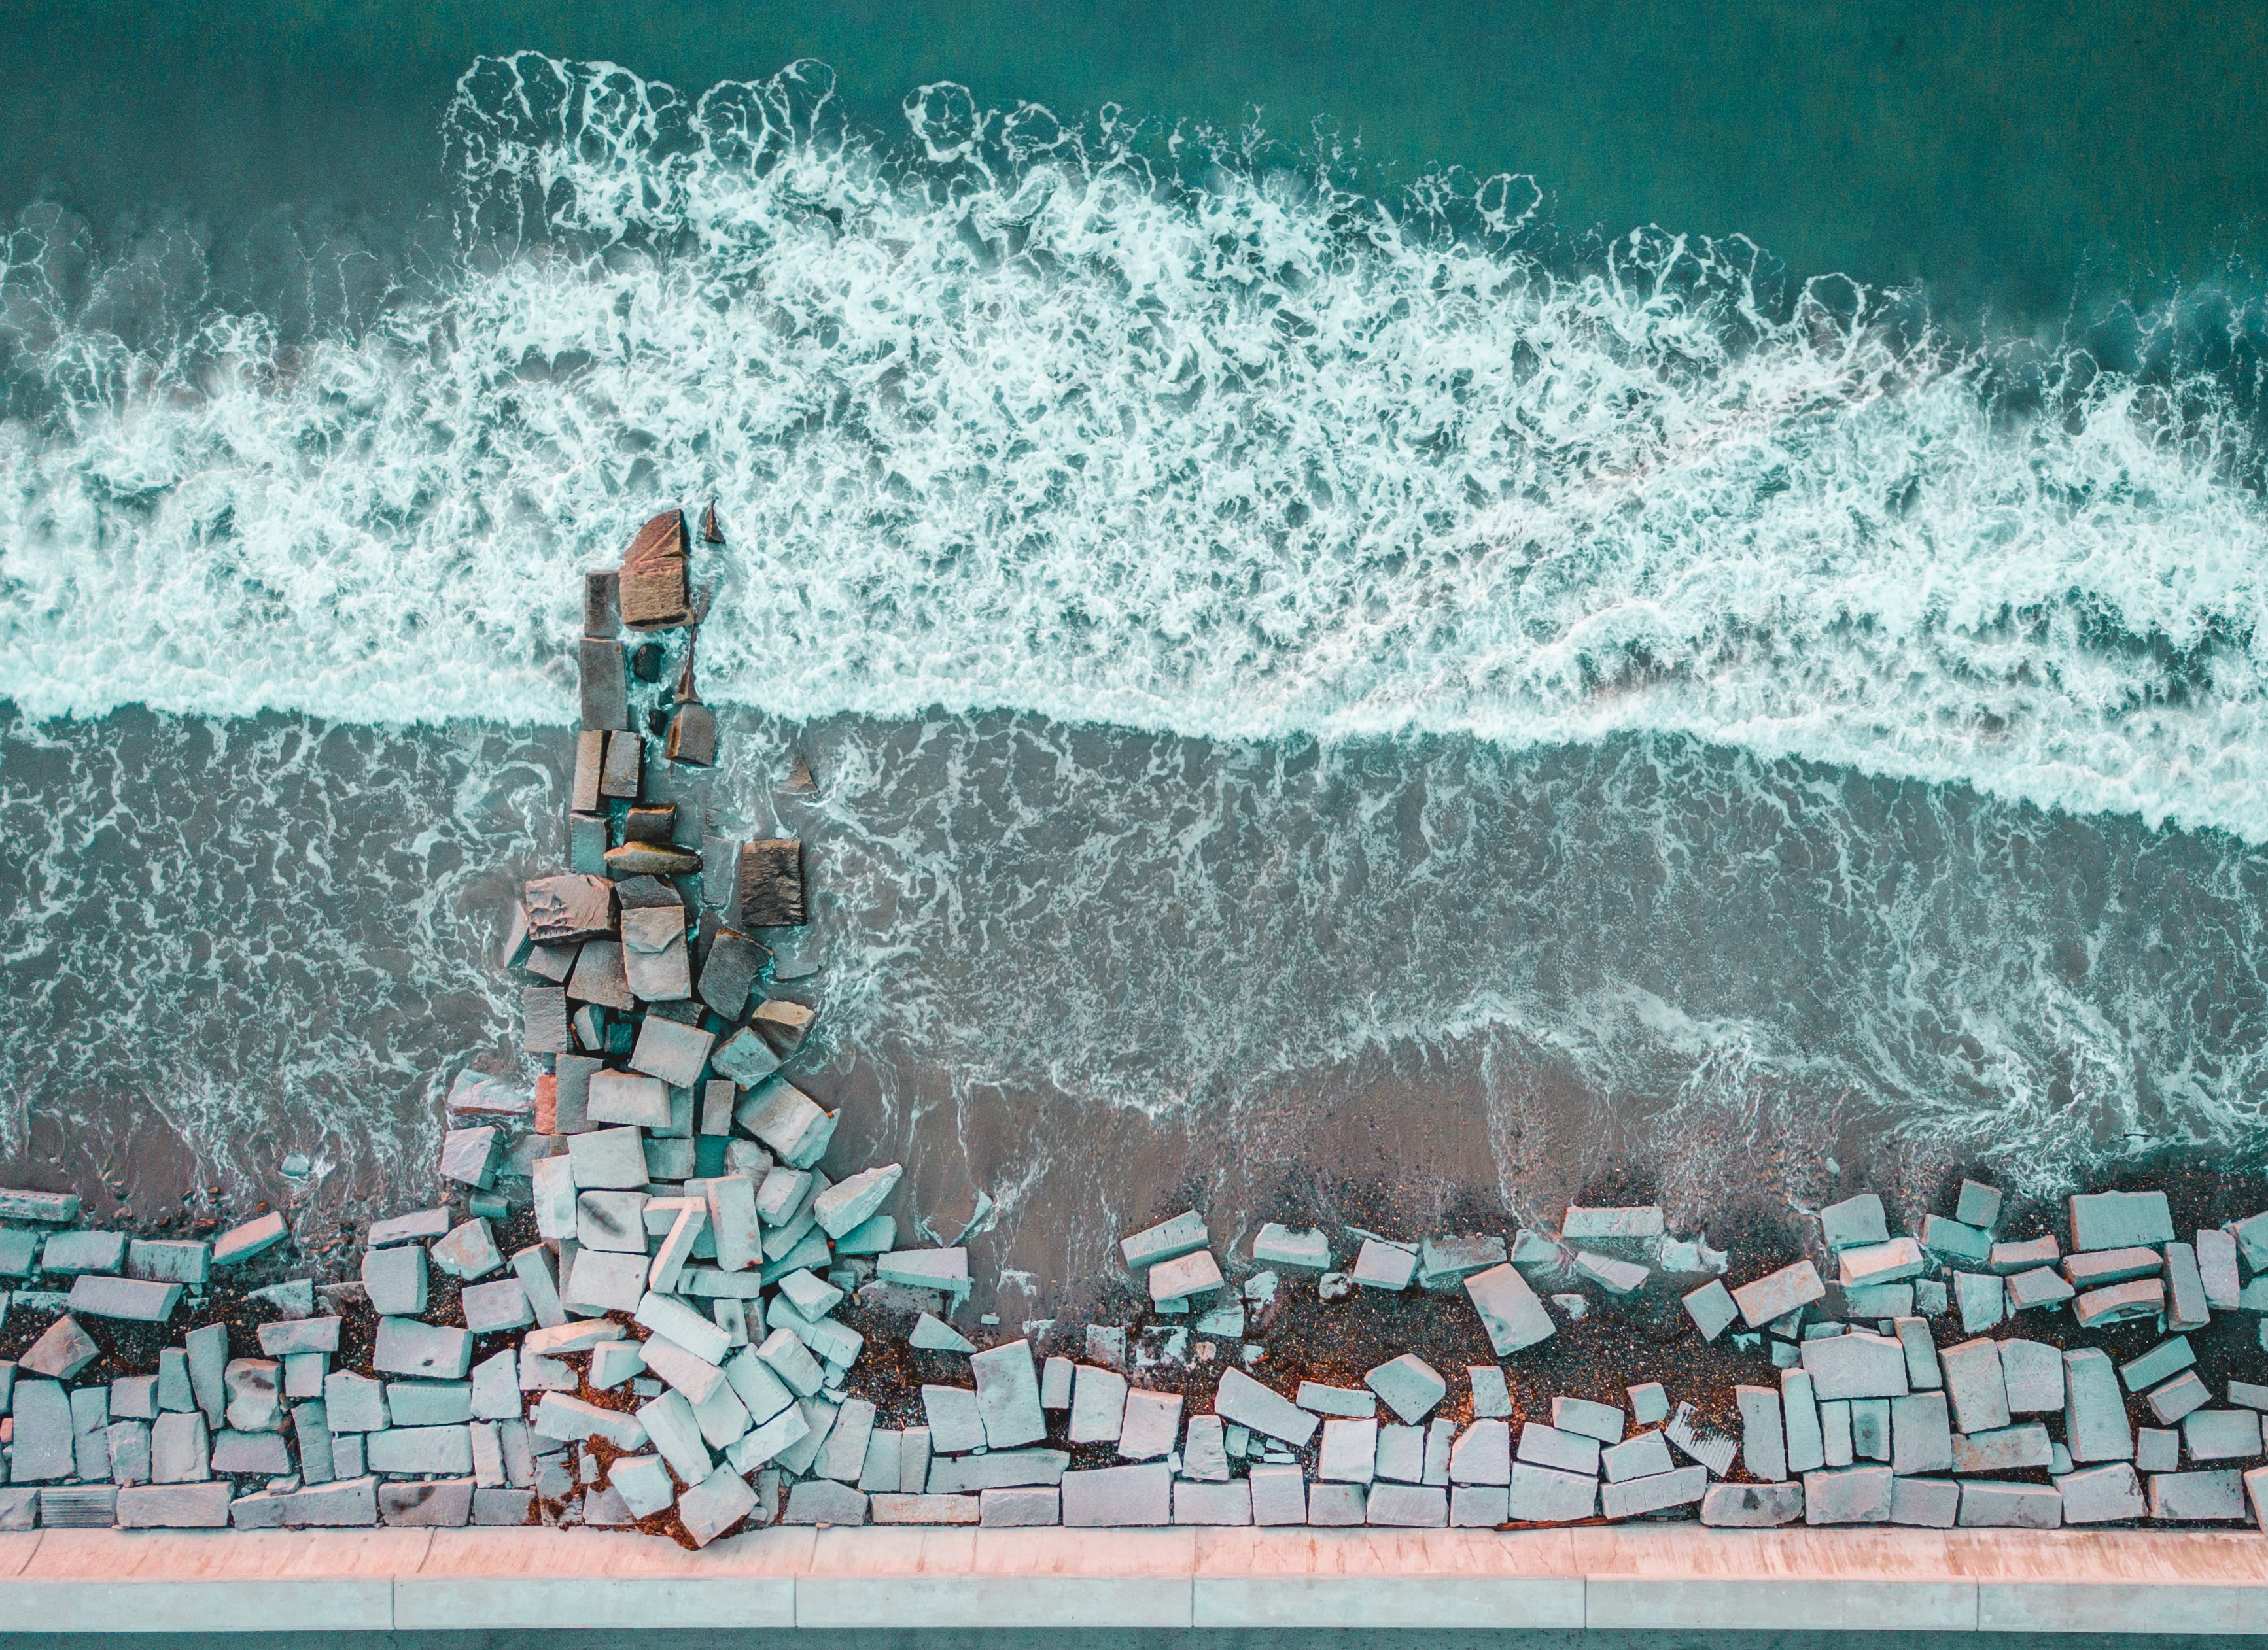 bird's-eye view photography of stone bricks on seashore